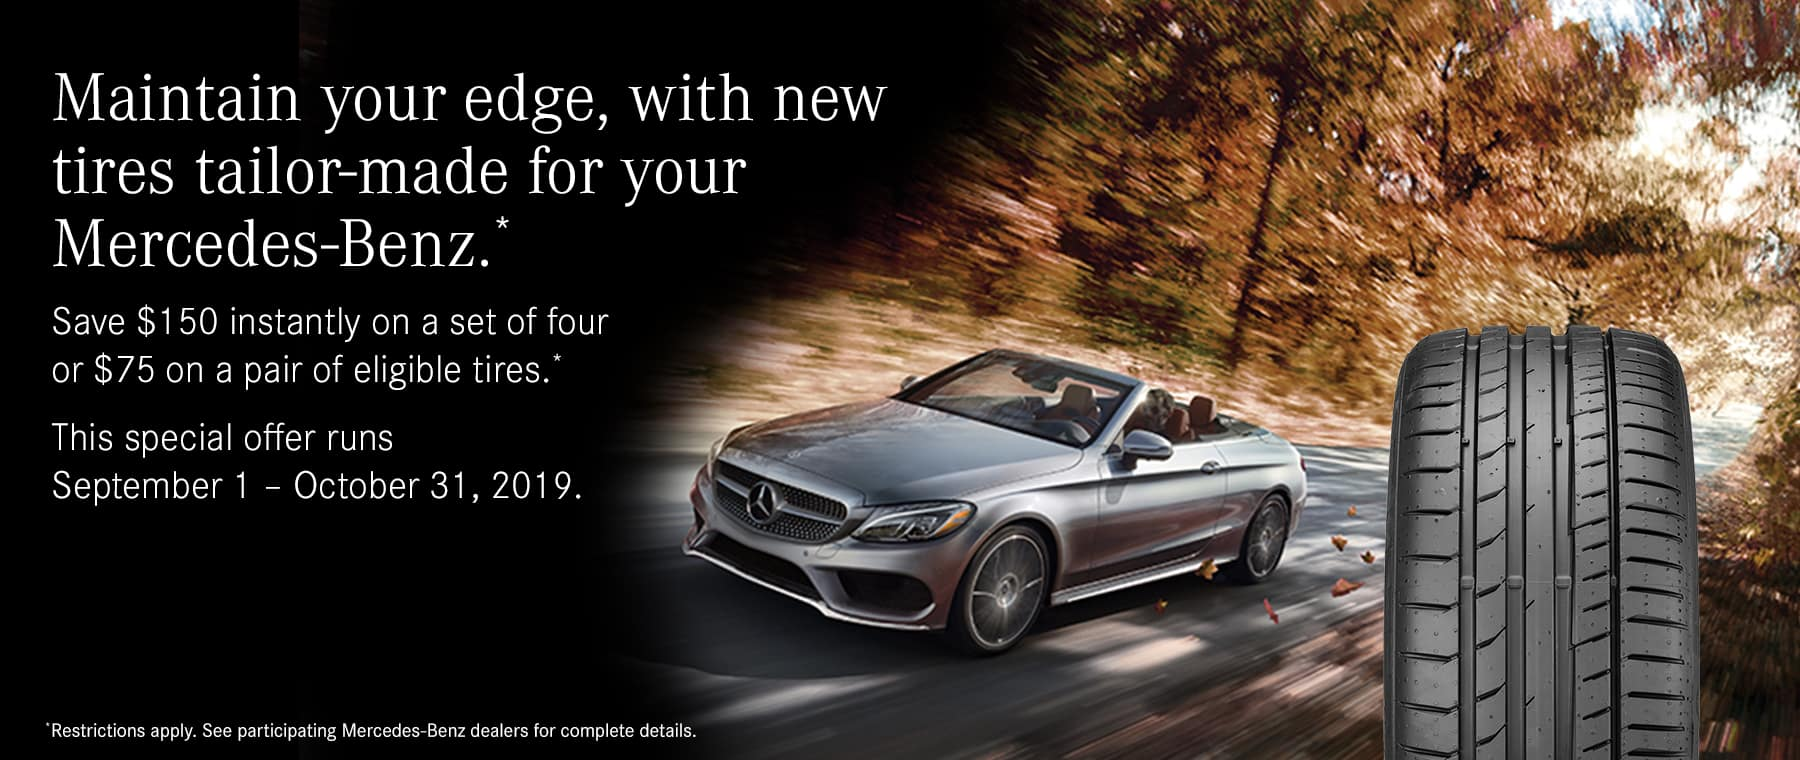 Sears Imported Autos, Inc  | Mercedes-Benz Dealer in